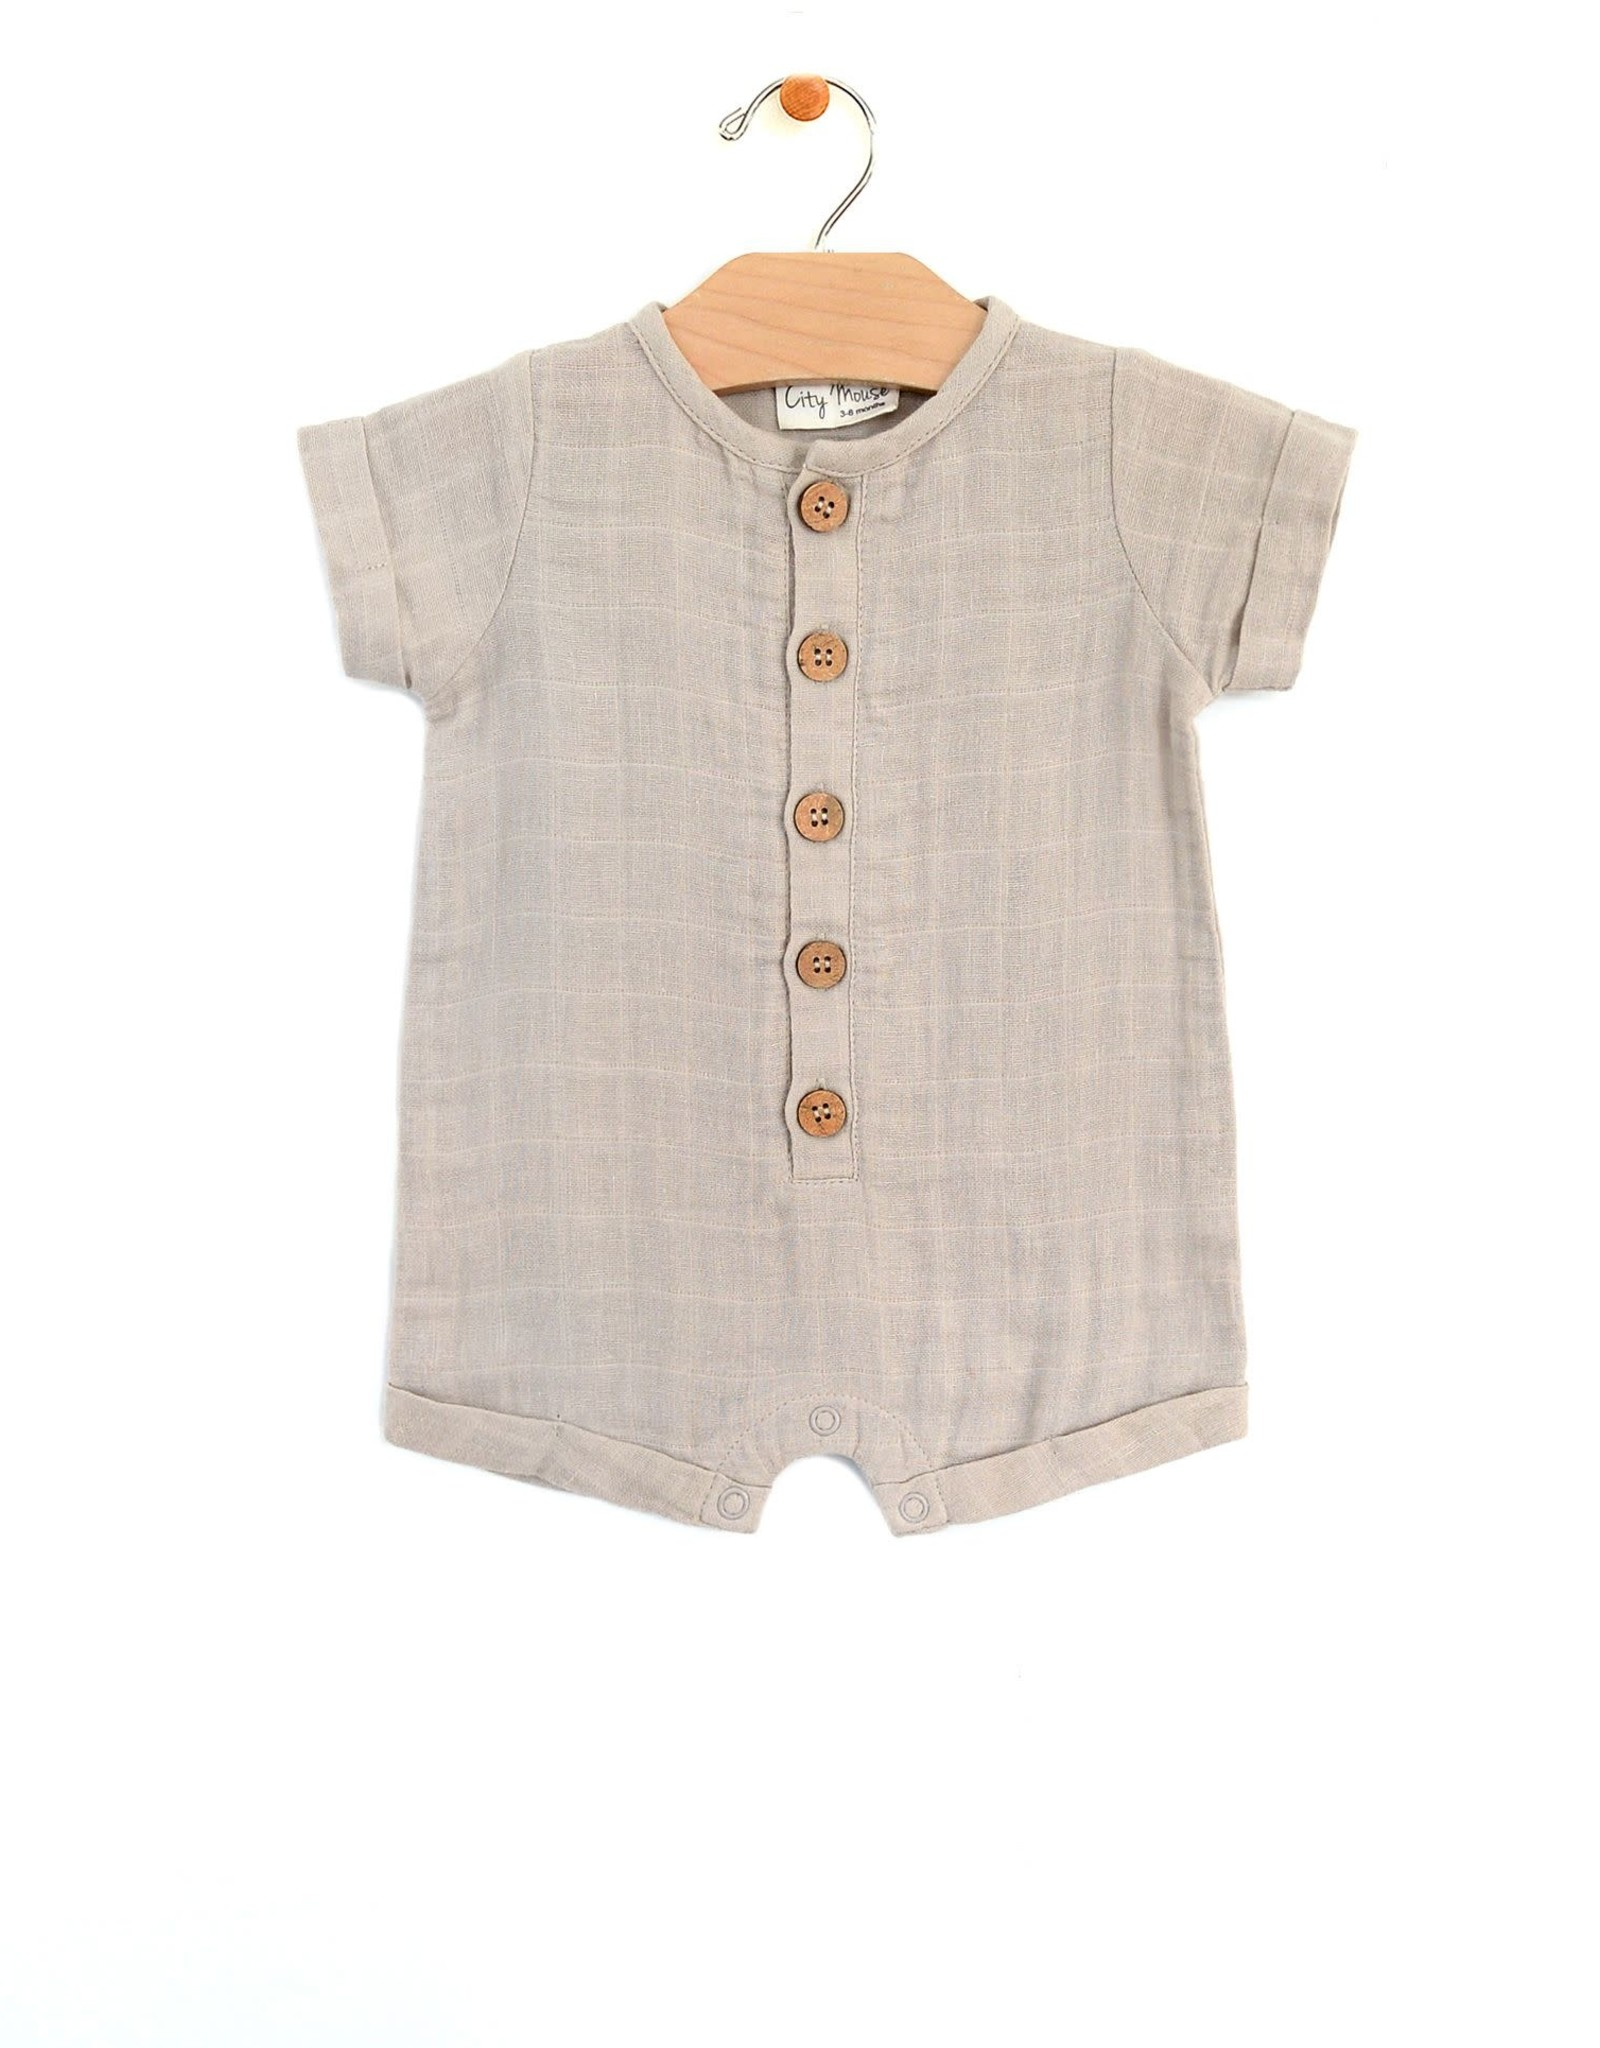 City Mouse shortie romper- rain cloud